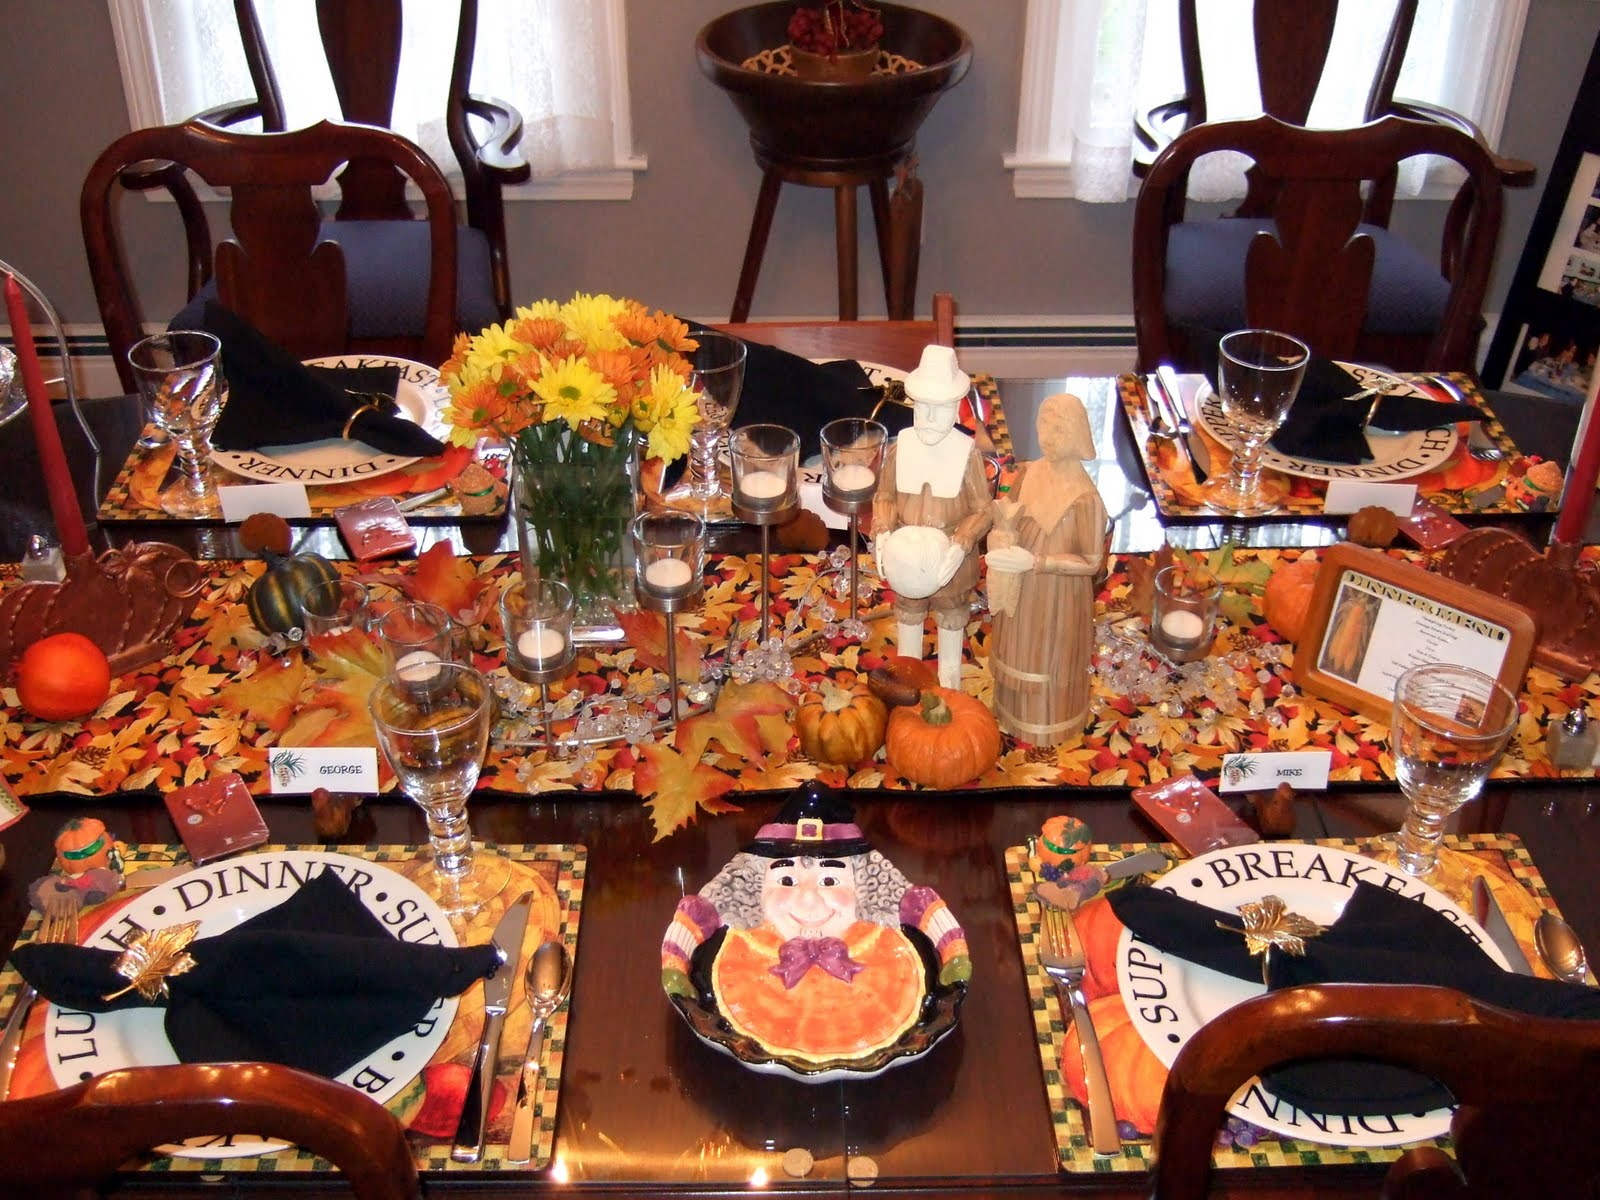 Dining table setting dining table thanksgiving How to set a thanksgiving dinner table